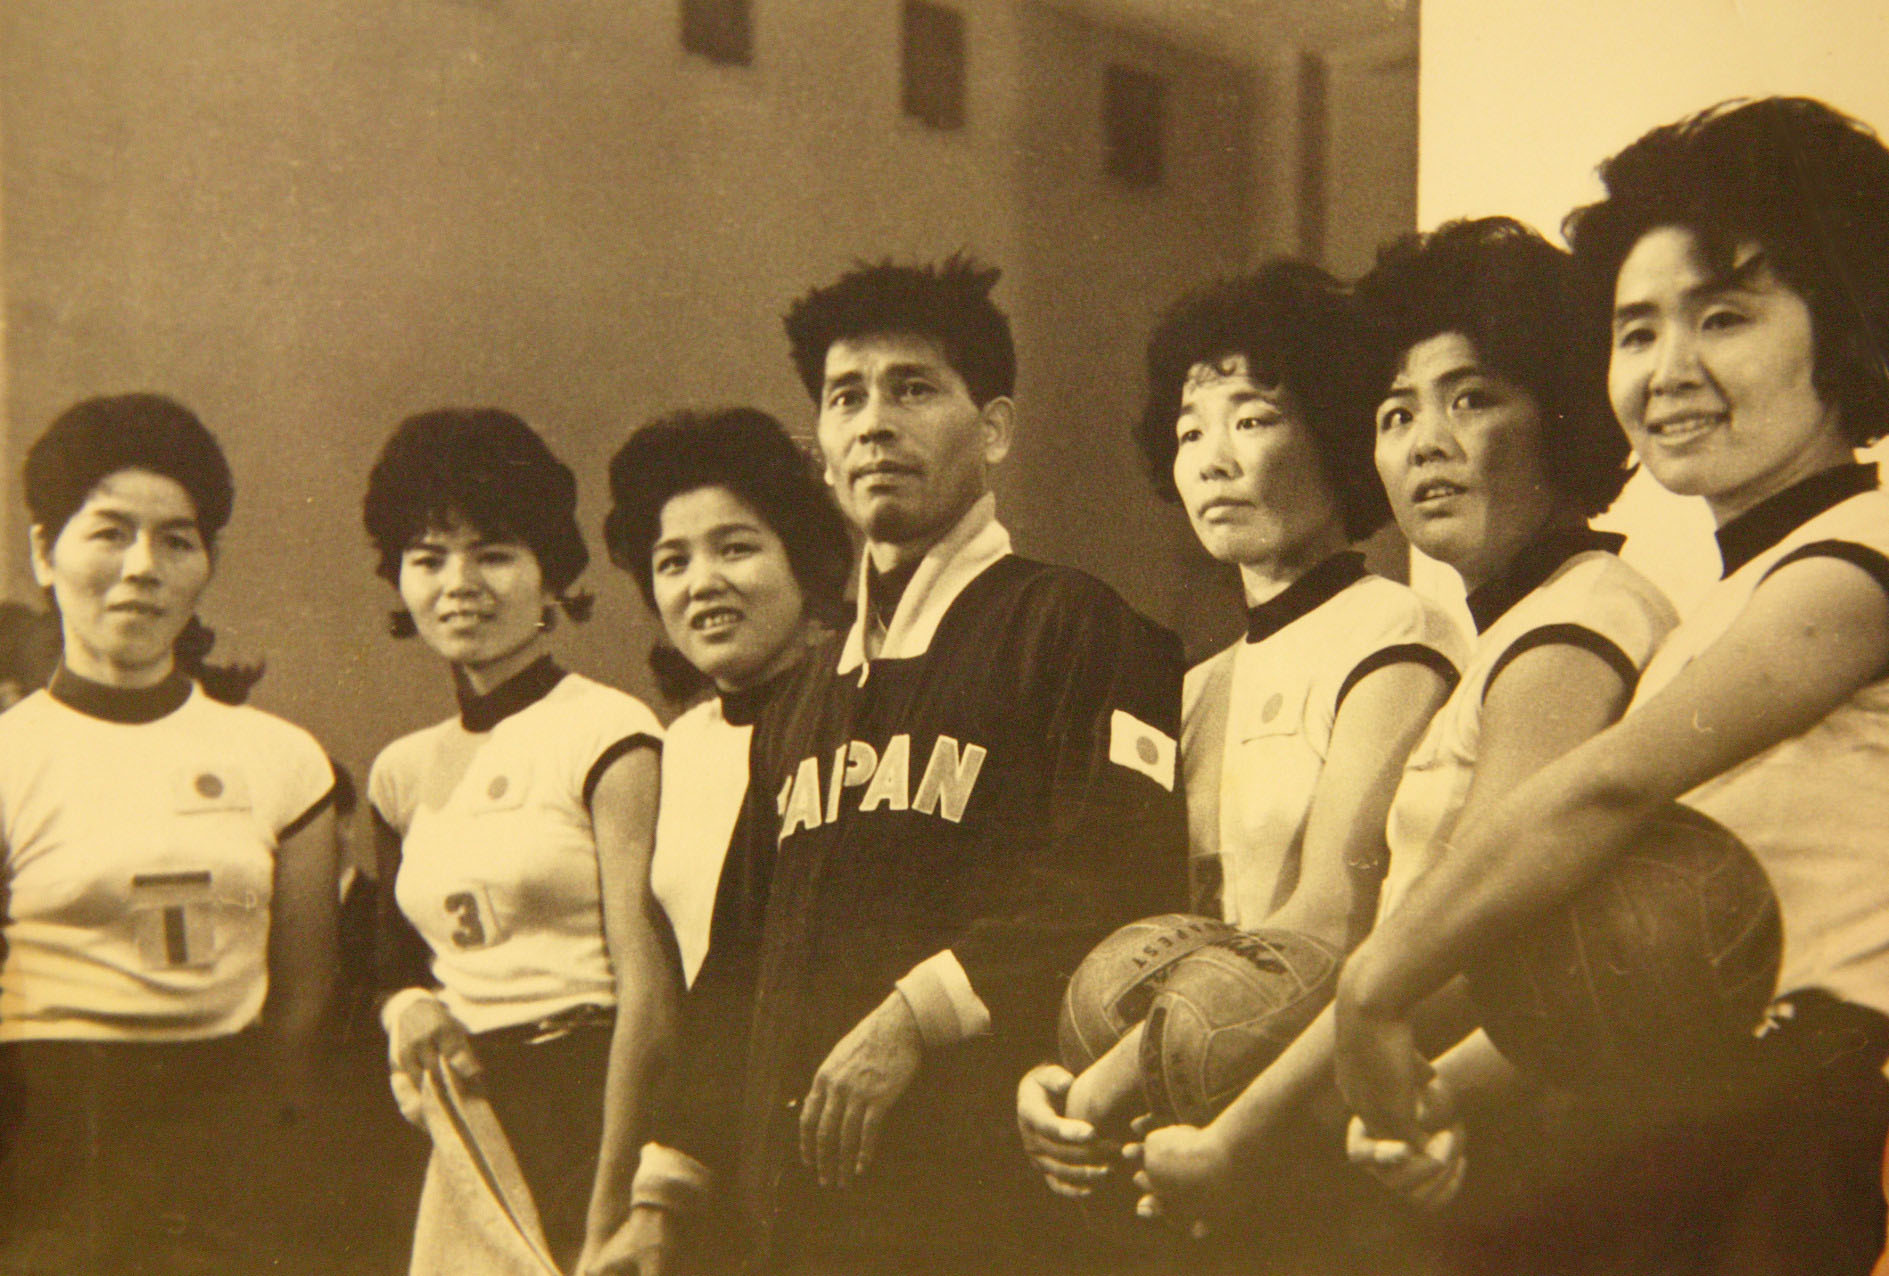 Japan at the Tokyo 1964 Olympic Games